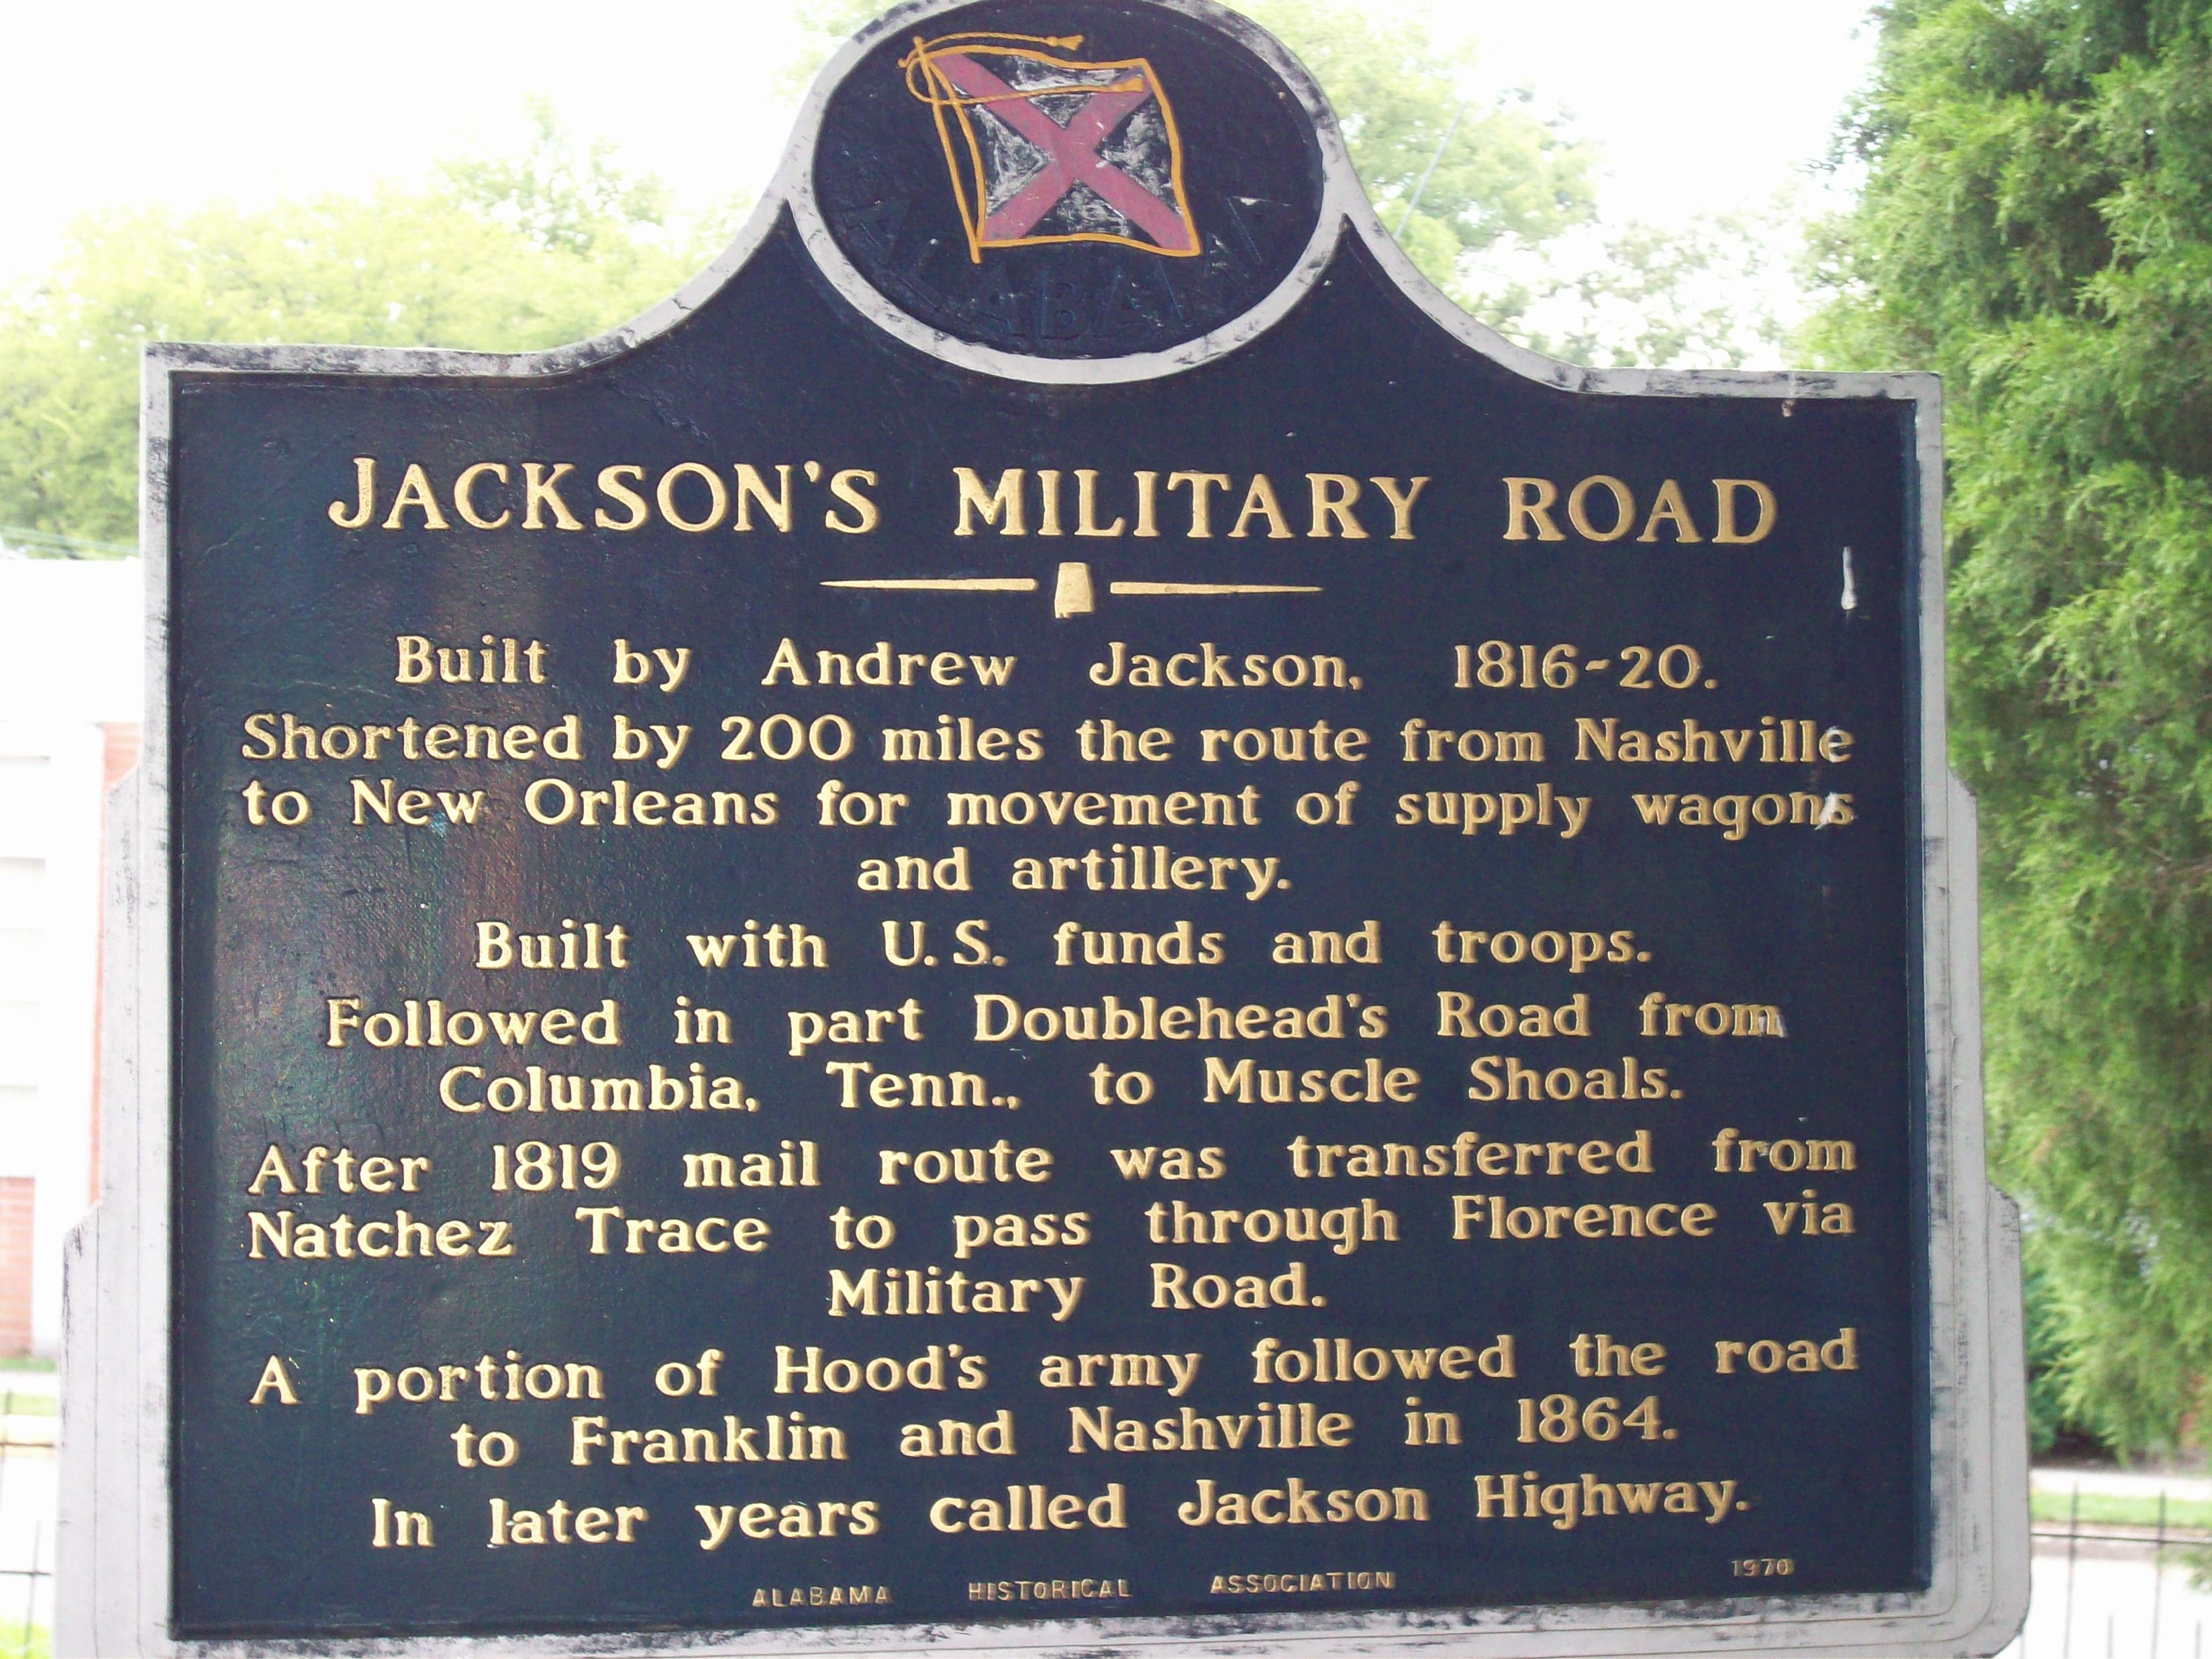 Jackson's Military Road